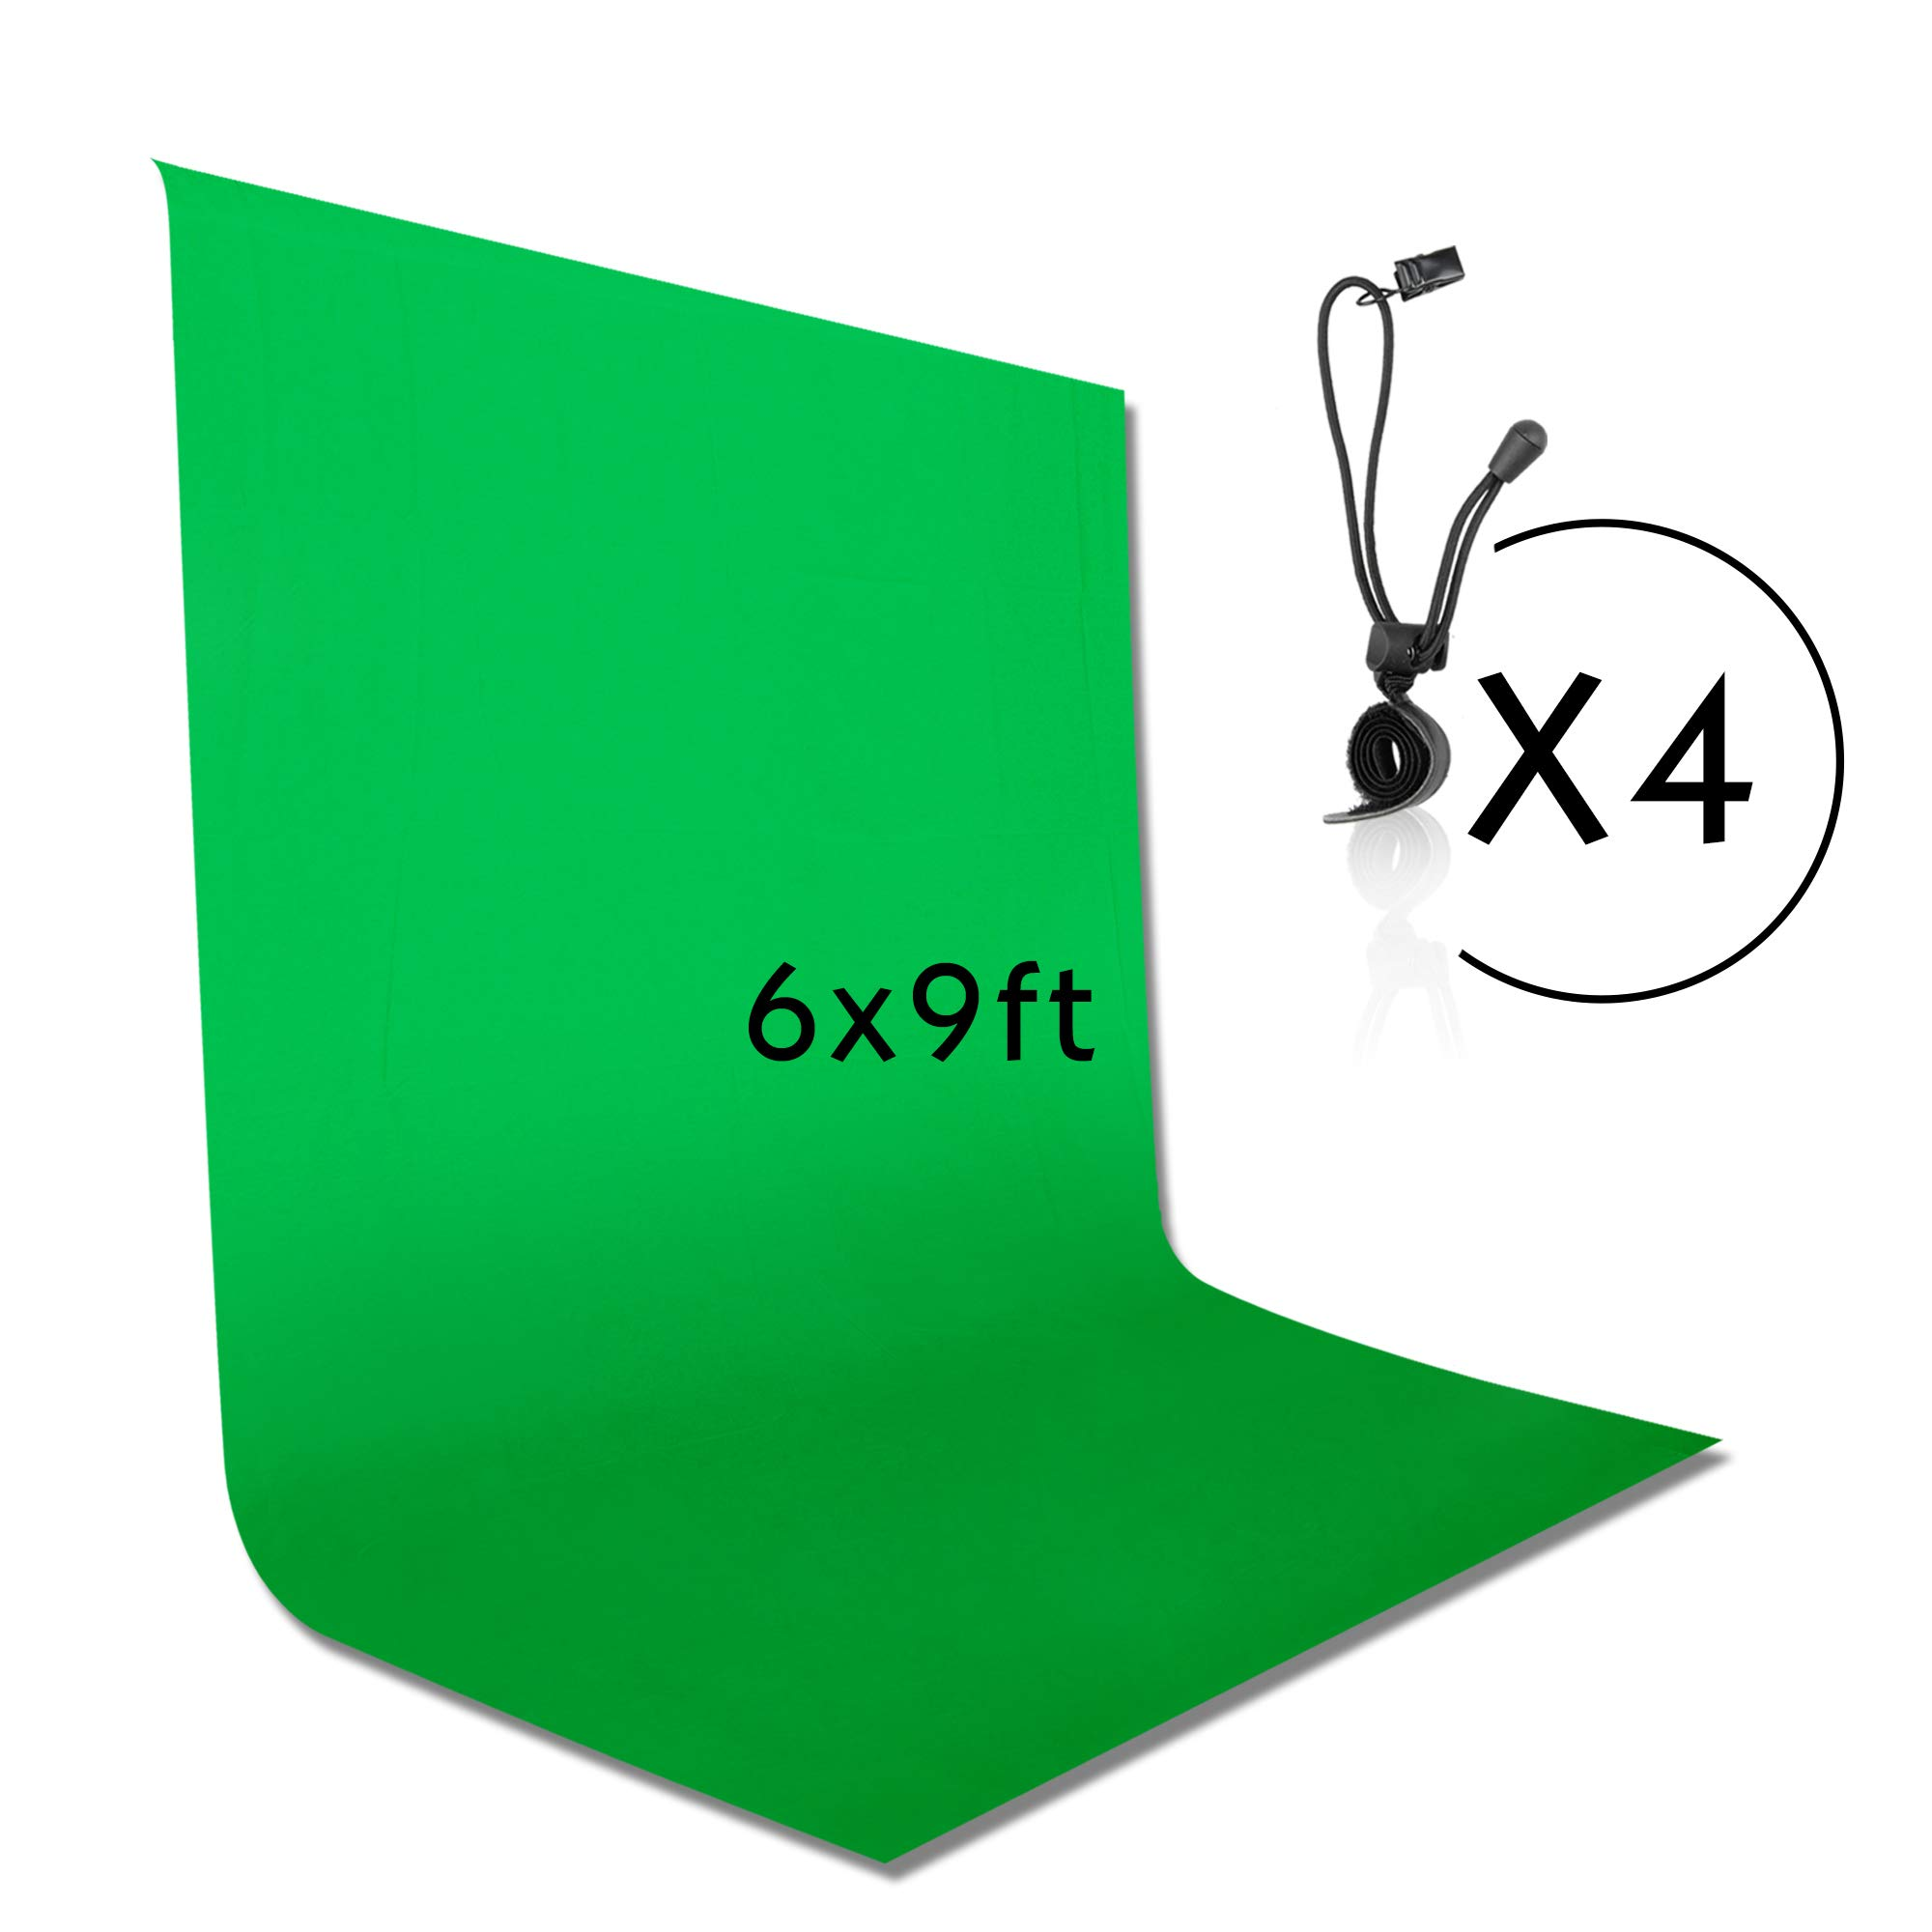 Emart 6 x 9 ft Photography Backdrop Background, Green Chromakey Muslin Background Screen for Photo Video Studio, 4 x Backdrop Clip by EMART